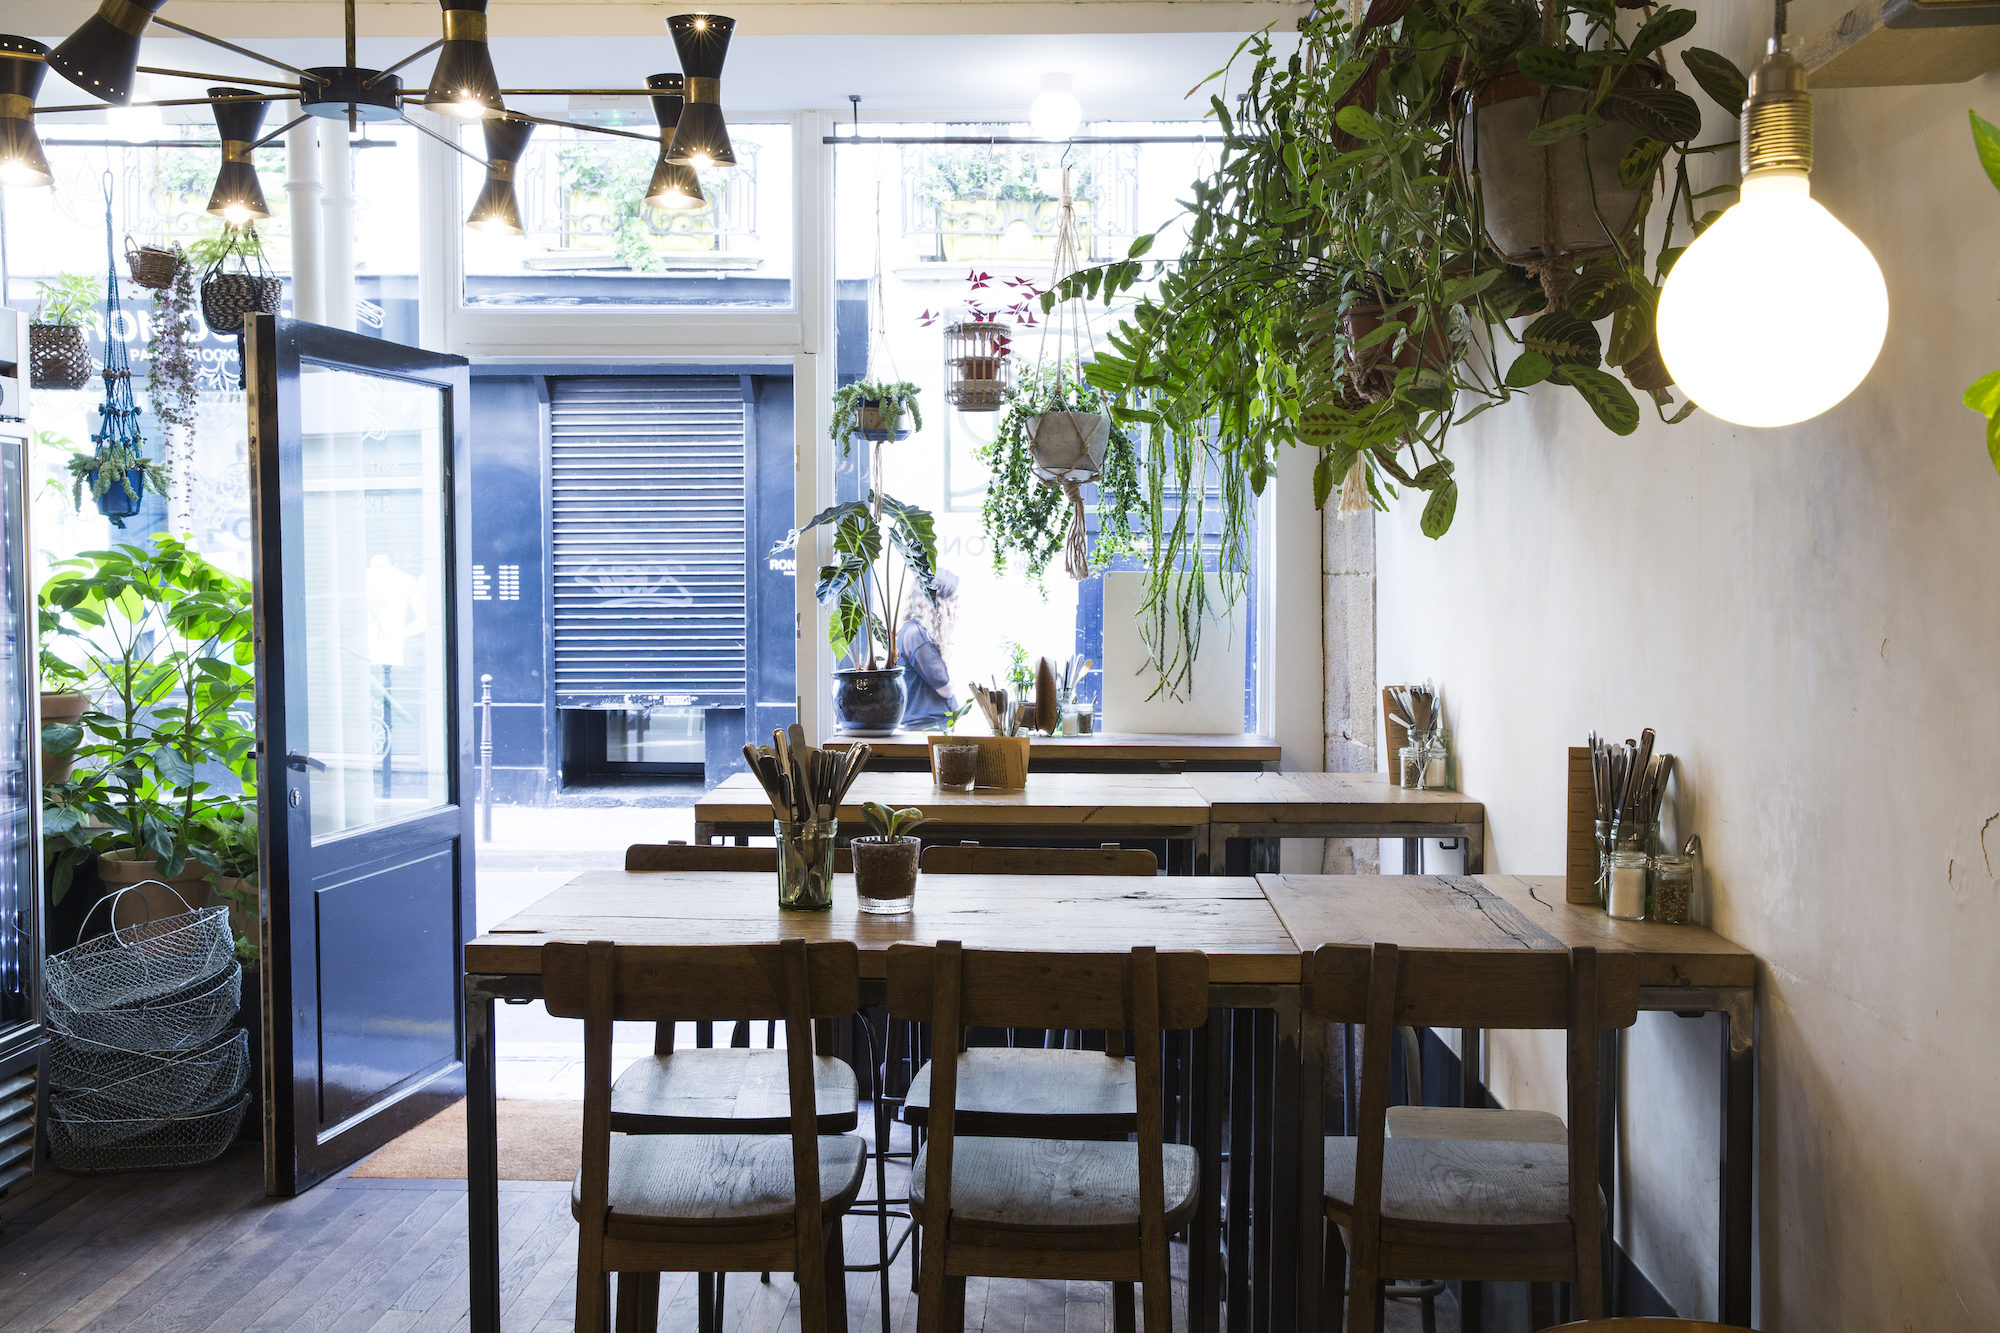 Inside gluten-free coffee shop Wild and the Moon in Paris, with its hanging plant baskets and timber tables and chairs.